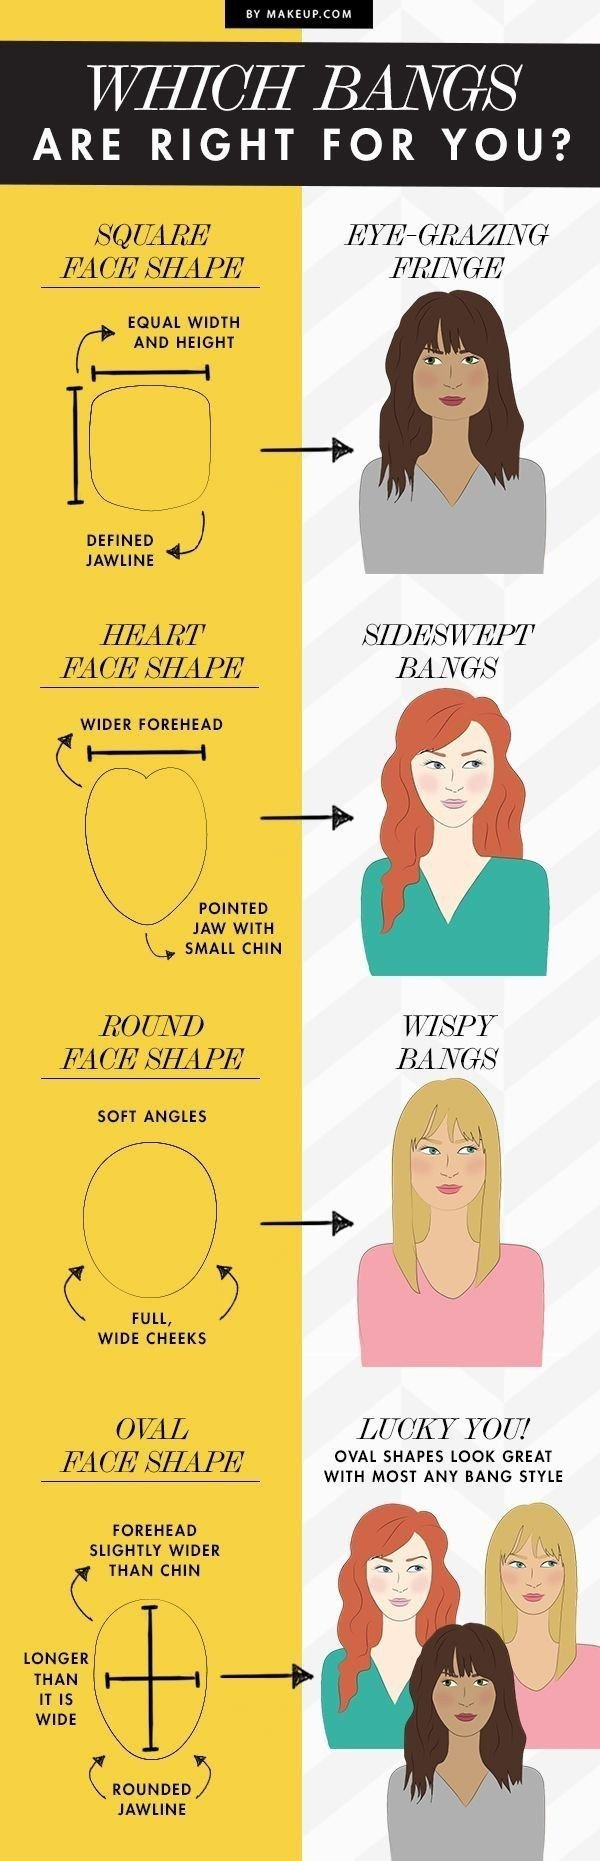 Which Bangs Are Right for You?